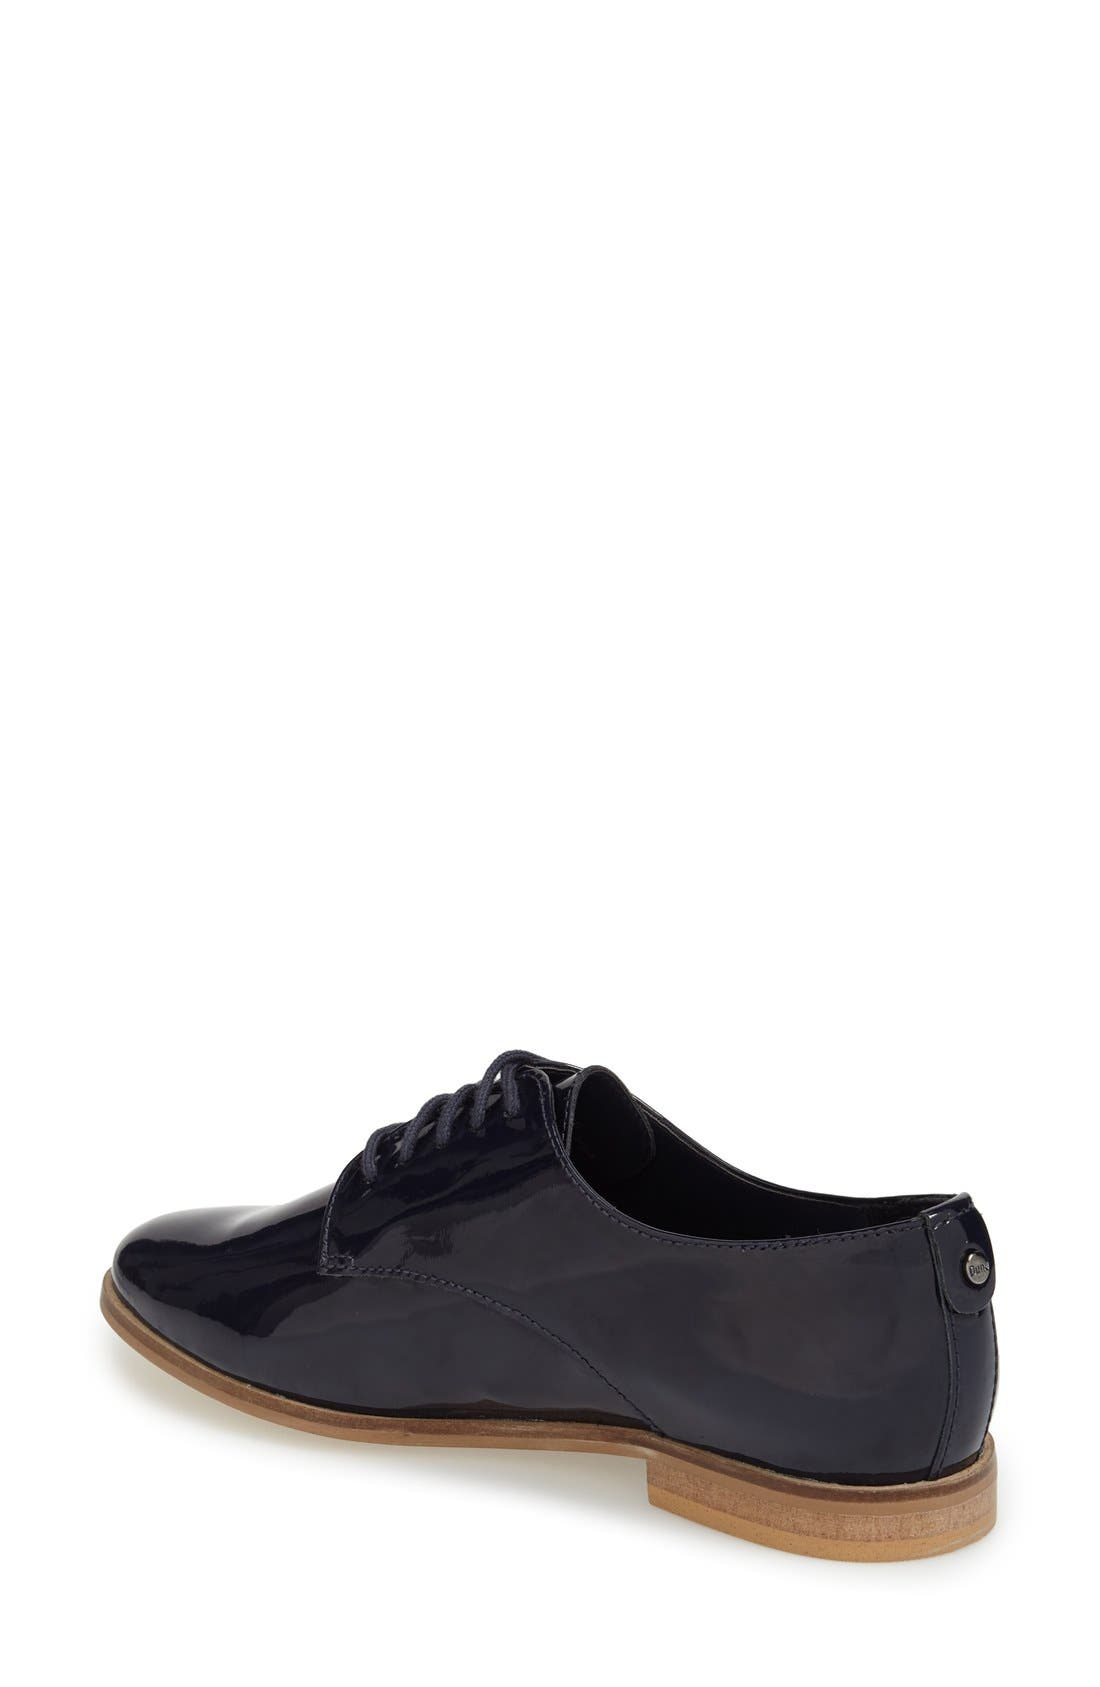 'Flossy' Patent Leather Oxford,                             Alternate thumbnail 2, color,                             Navy Patent Leather